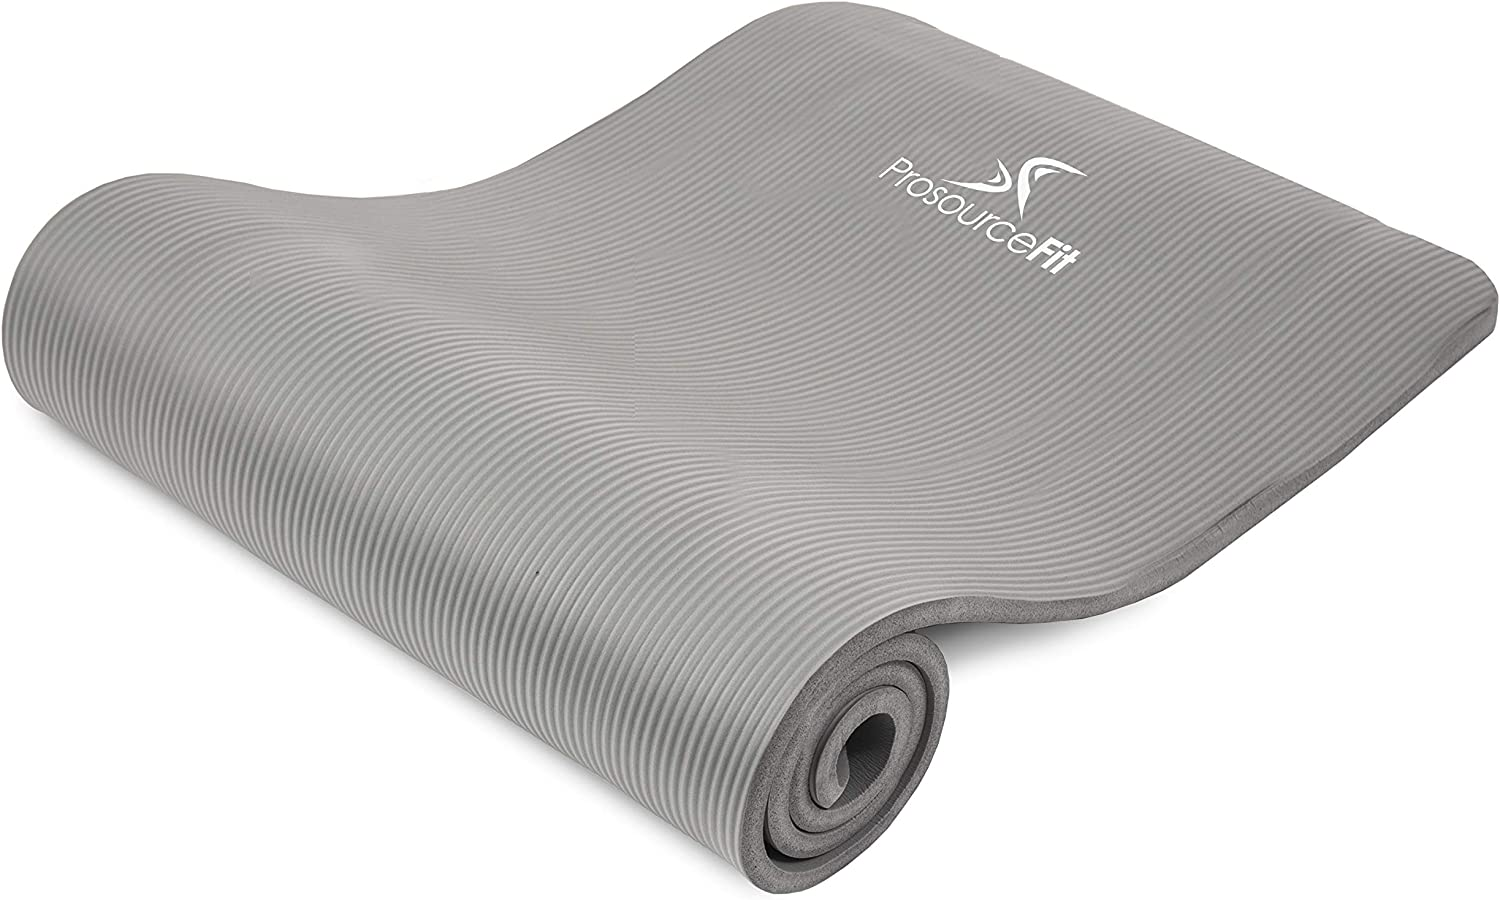 ProsourceFit Extra Thick Yoga and Pilates Mat ½ (13mm), 71-inch Long High Density Exercise Mat with Comfort Foam and Carrying Strap, Grey : Sports & Outdoors